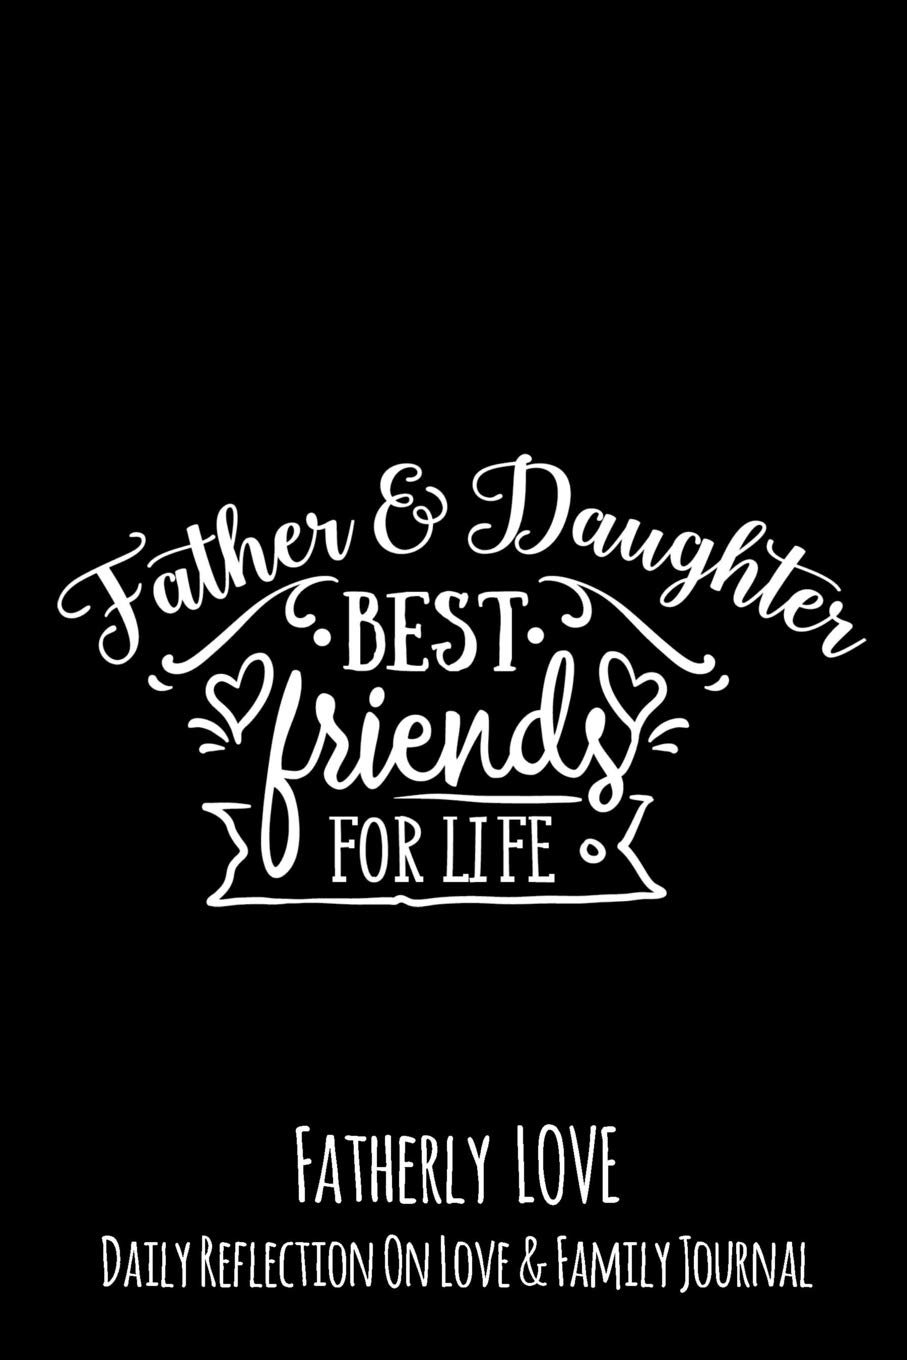 Father & Daughter Best Friends For Life: Fatherly Love ...